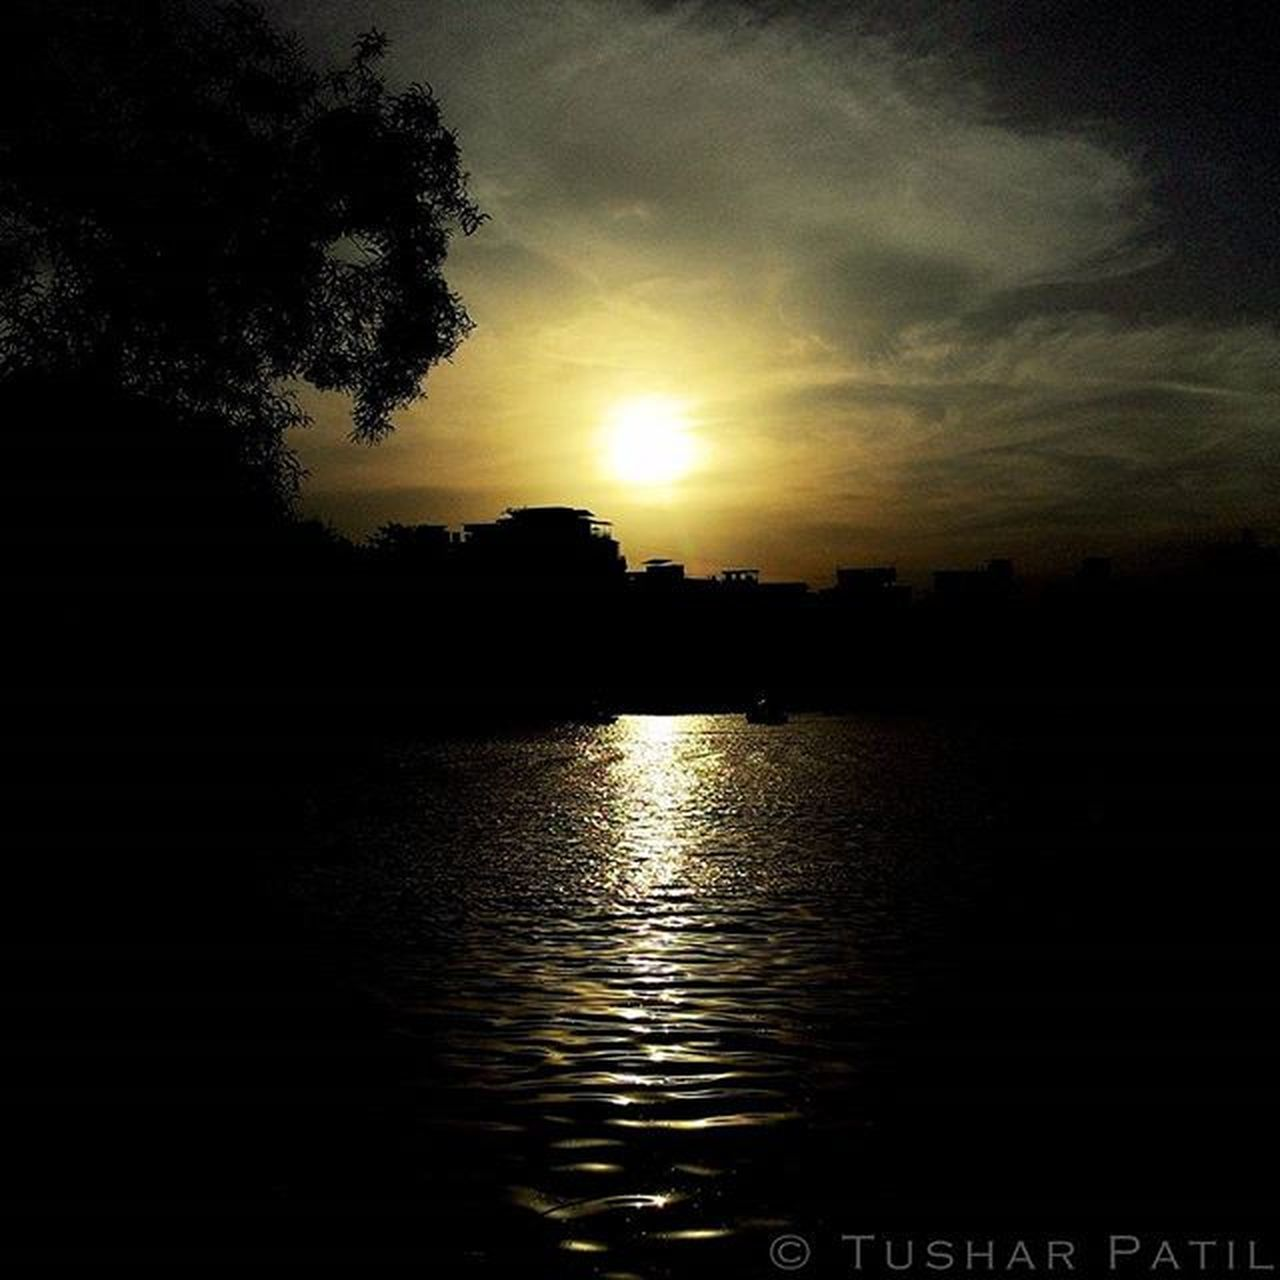 The enchanting and soothing sunset at the Talao pali lake, Thane. Talaopali Lake Thane Sunset Lakeview Awesome_shots Beautiful Scenery Shot Igers Indianstories IGDaily Ig_maharashtra Ig_worldclub Ig_india _soi Repostingindia Indian_photographers India_gram Instagram Instagood Instadaily Asus Zenfone Asusglobal seewhatotherscantsee